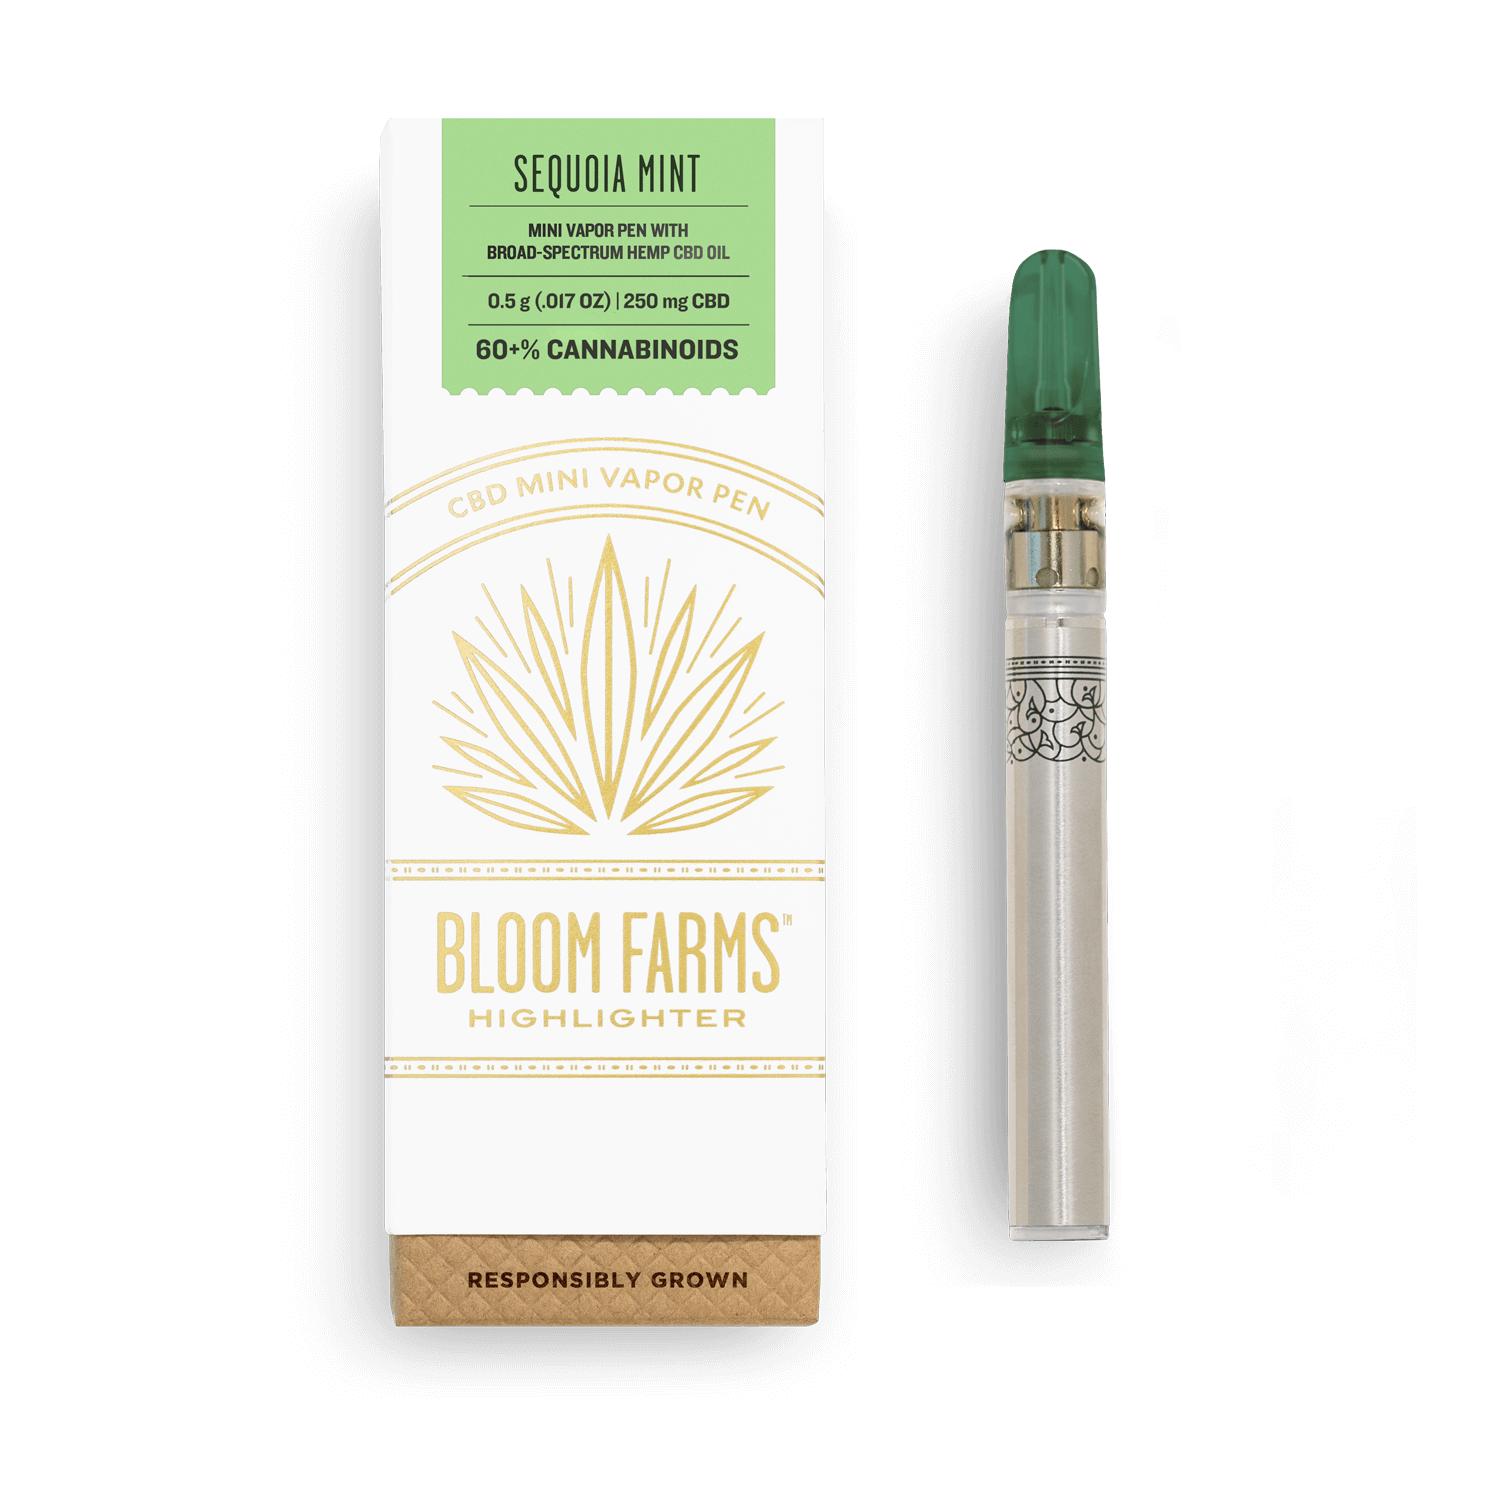 sequoia mint bloom farms